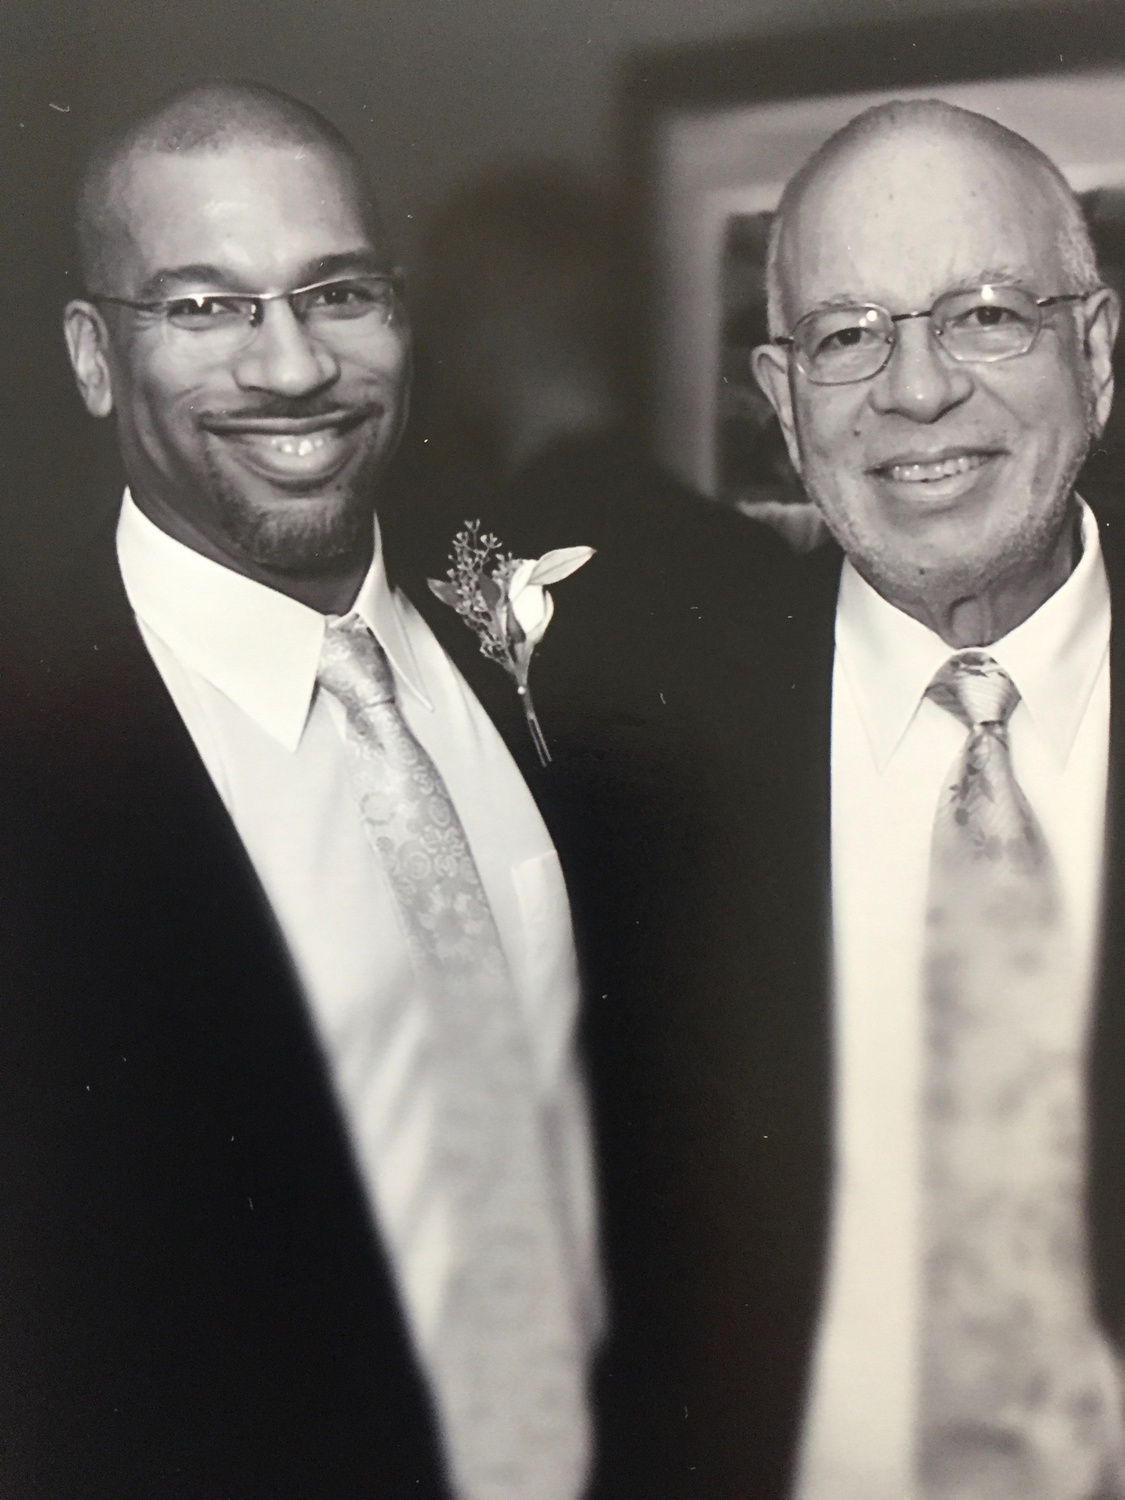 Christian Cooper with his father.